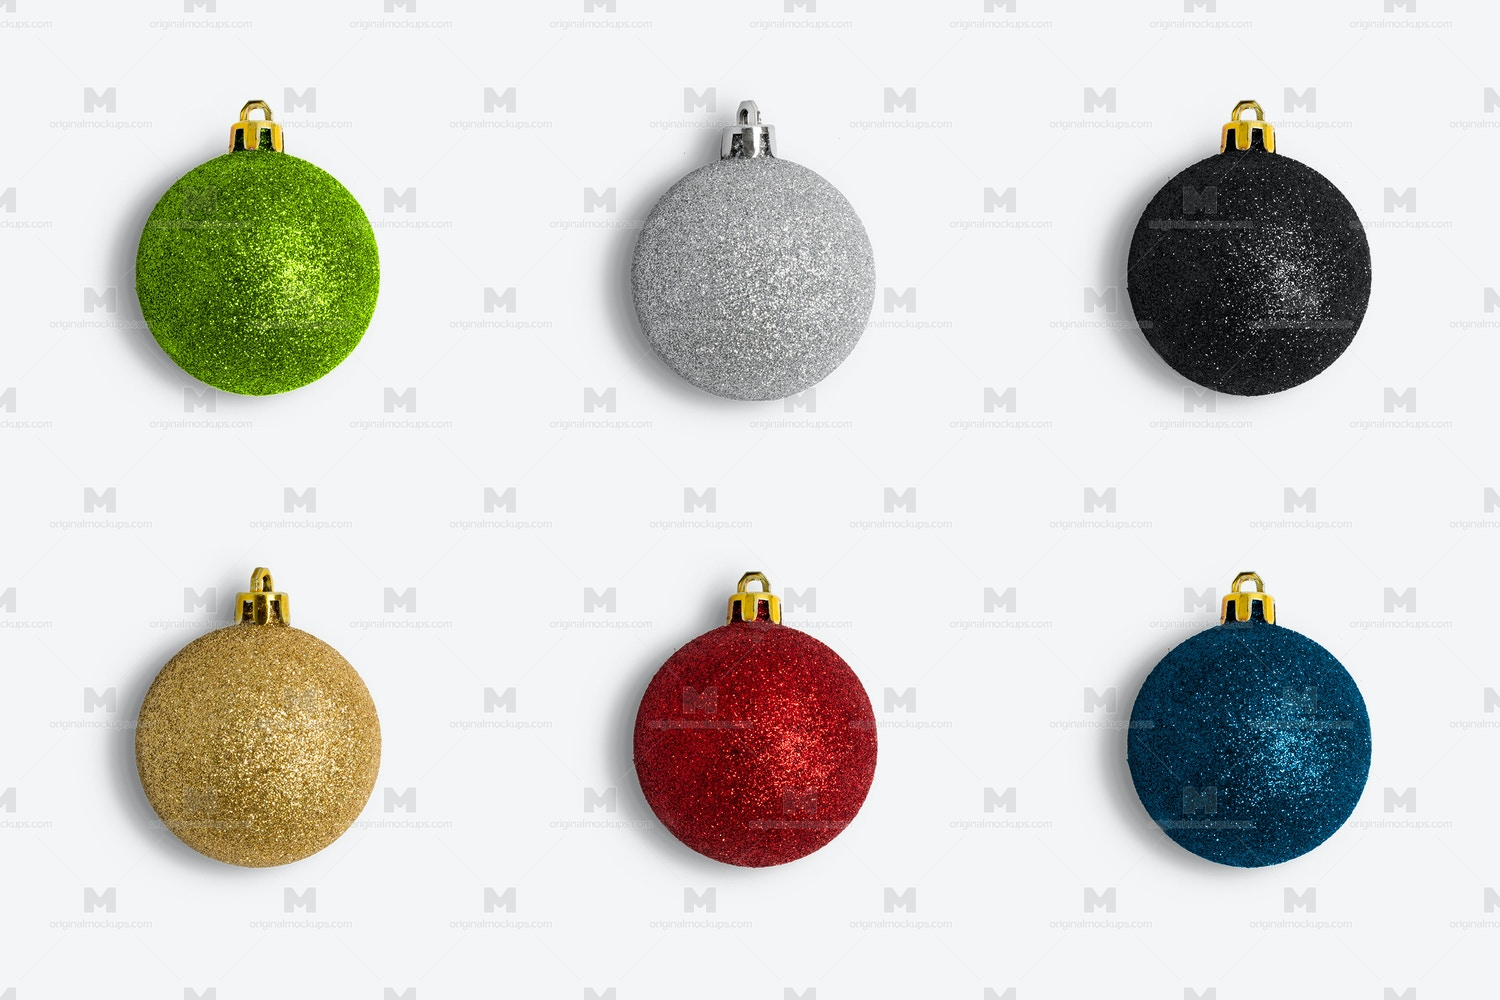 Christmas Colorful Ornaments Frosty Isolate por Original Mockups en Original Mockups